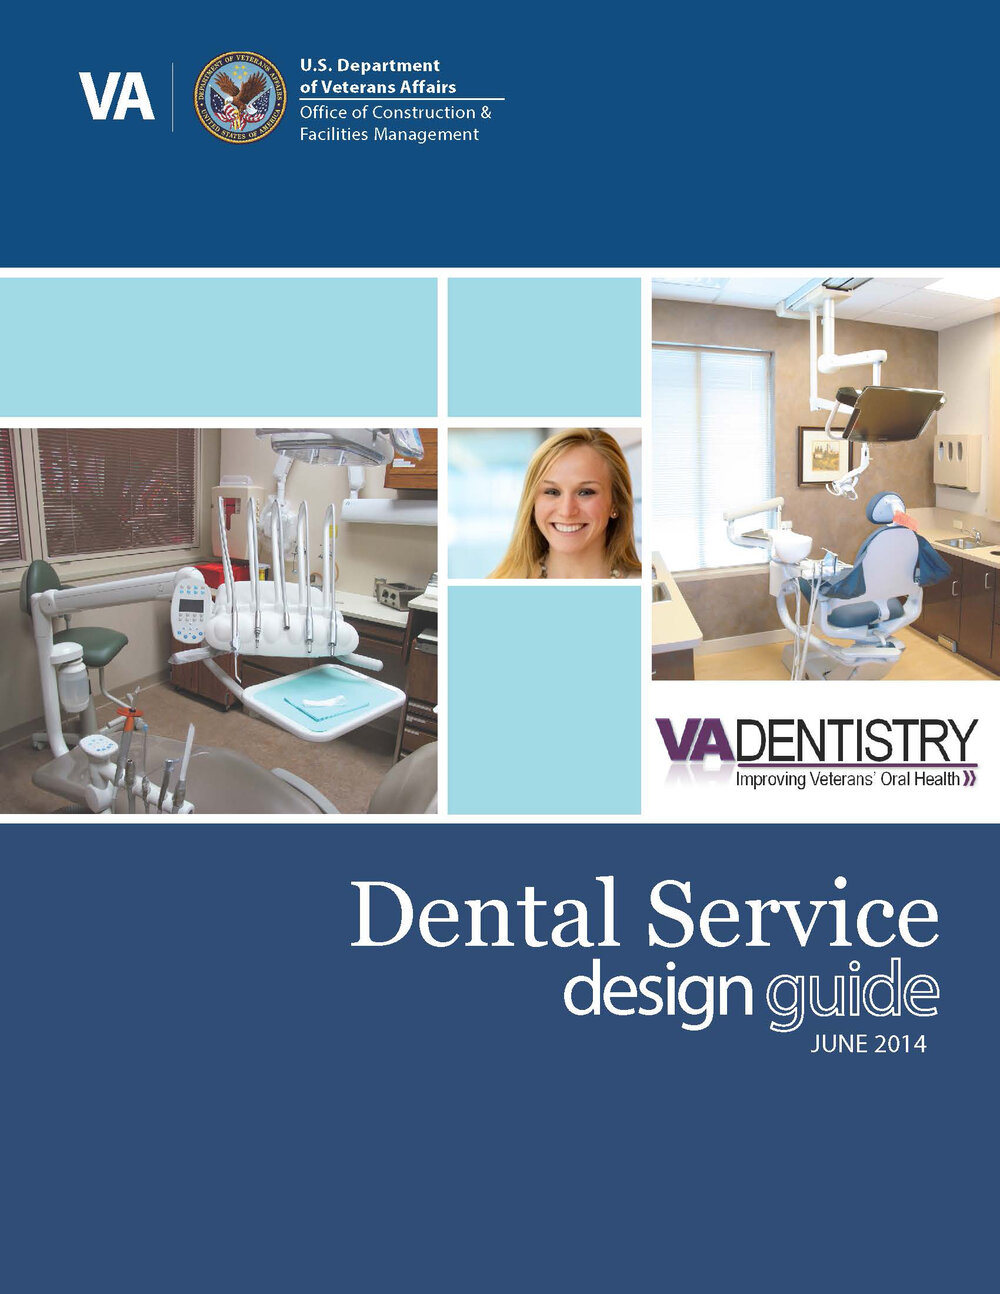 01_Dental Service Guide Cover.jpg